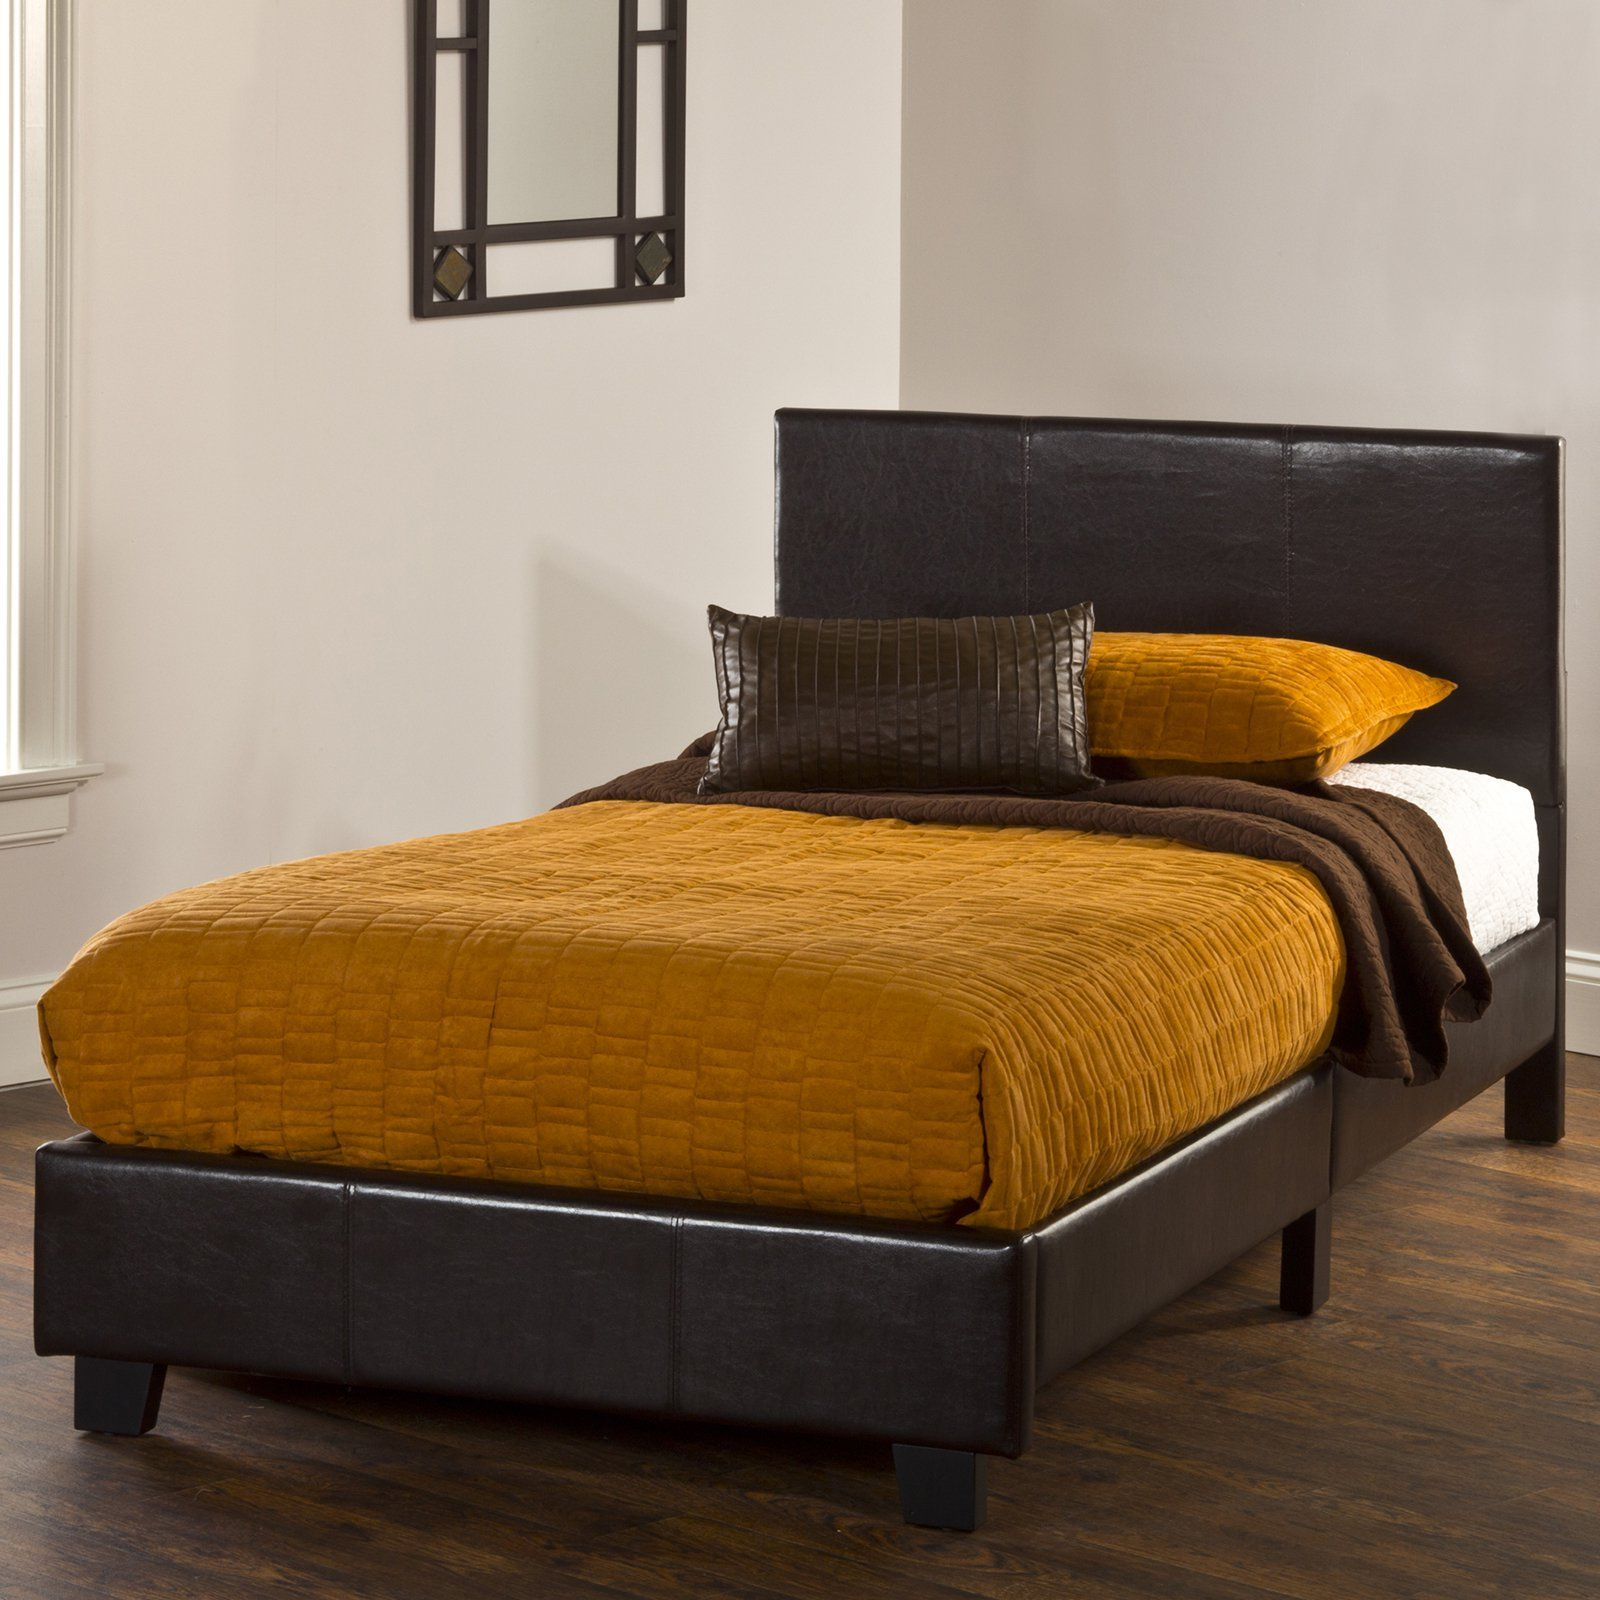 Springfield Bed in a Box Bed Set Twin Hillsdale